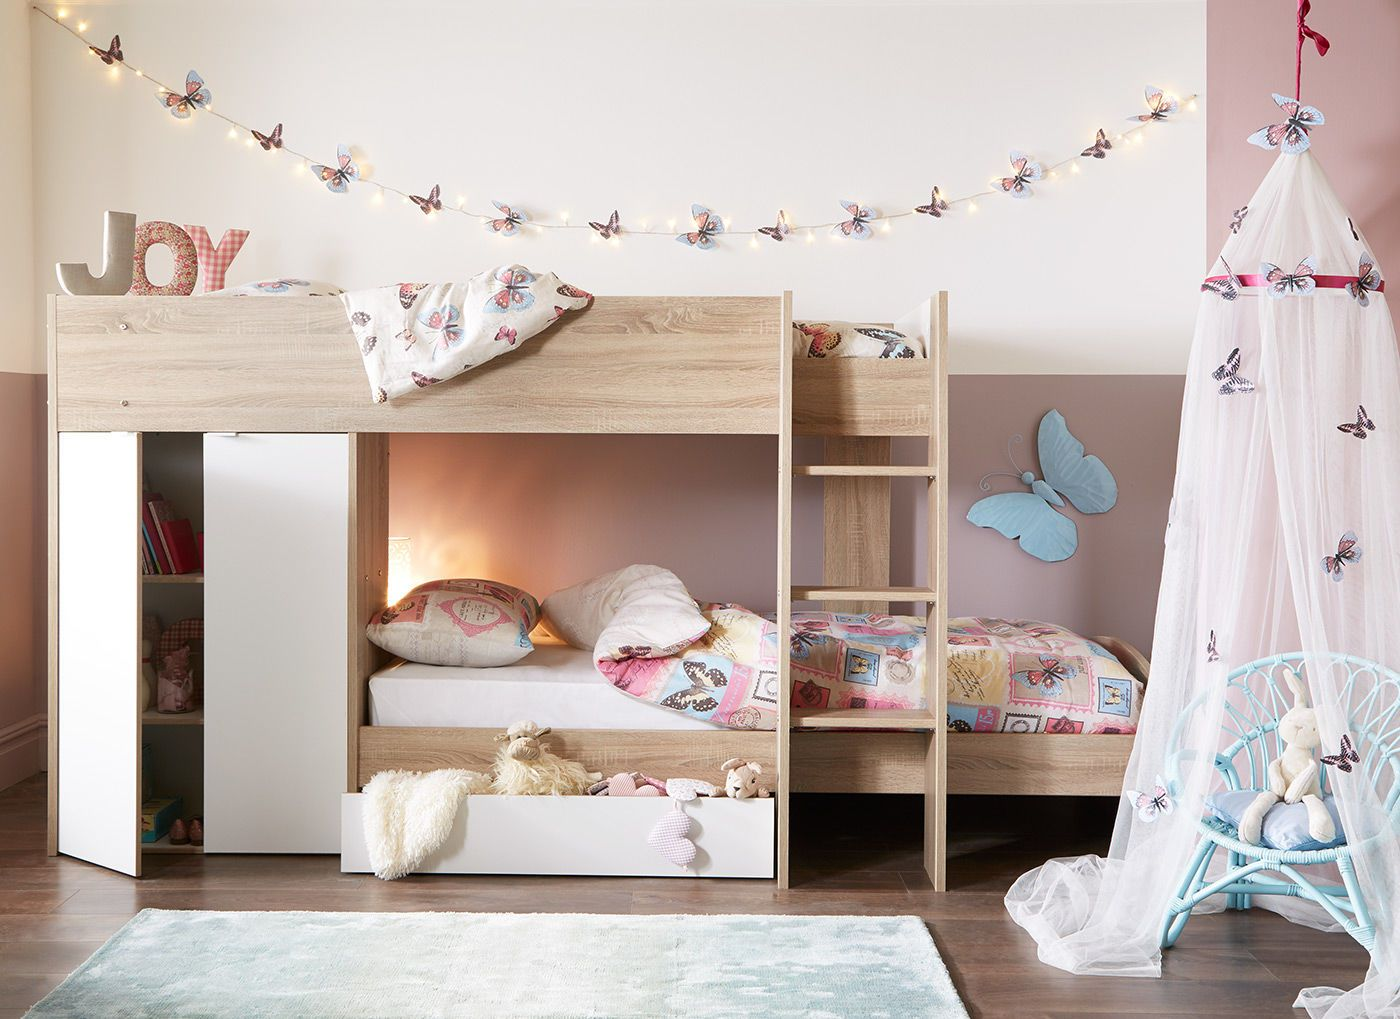 Best Finley Bunk Bed Frame With Storage In 2020 Bunk Beds 400 x 300